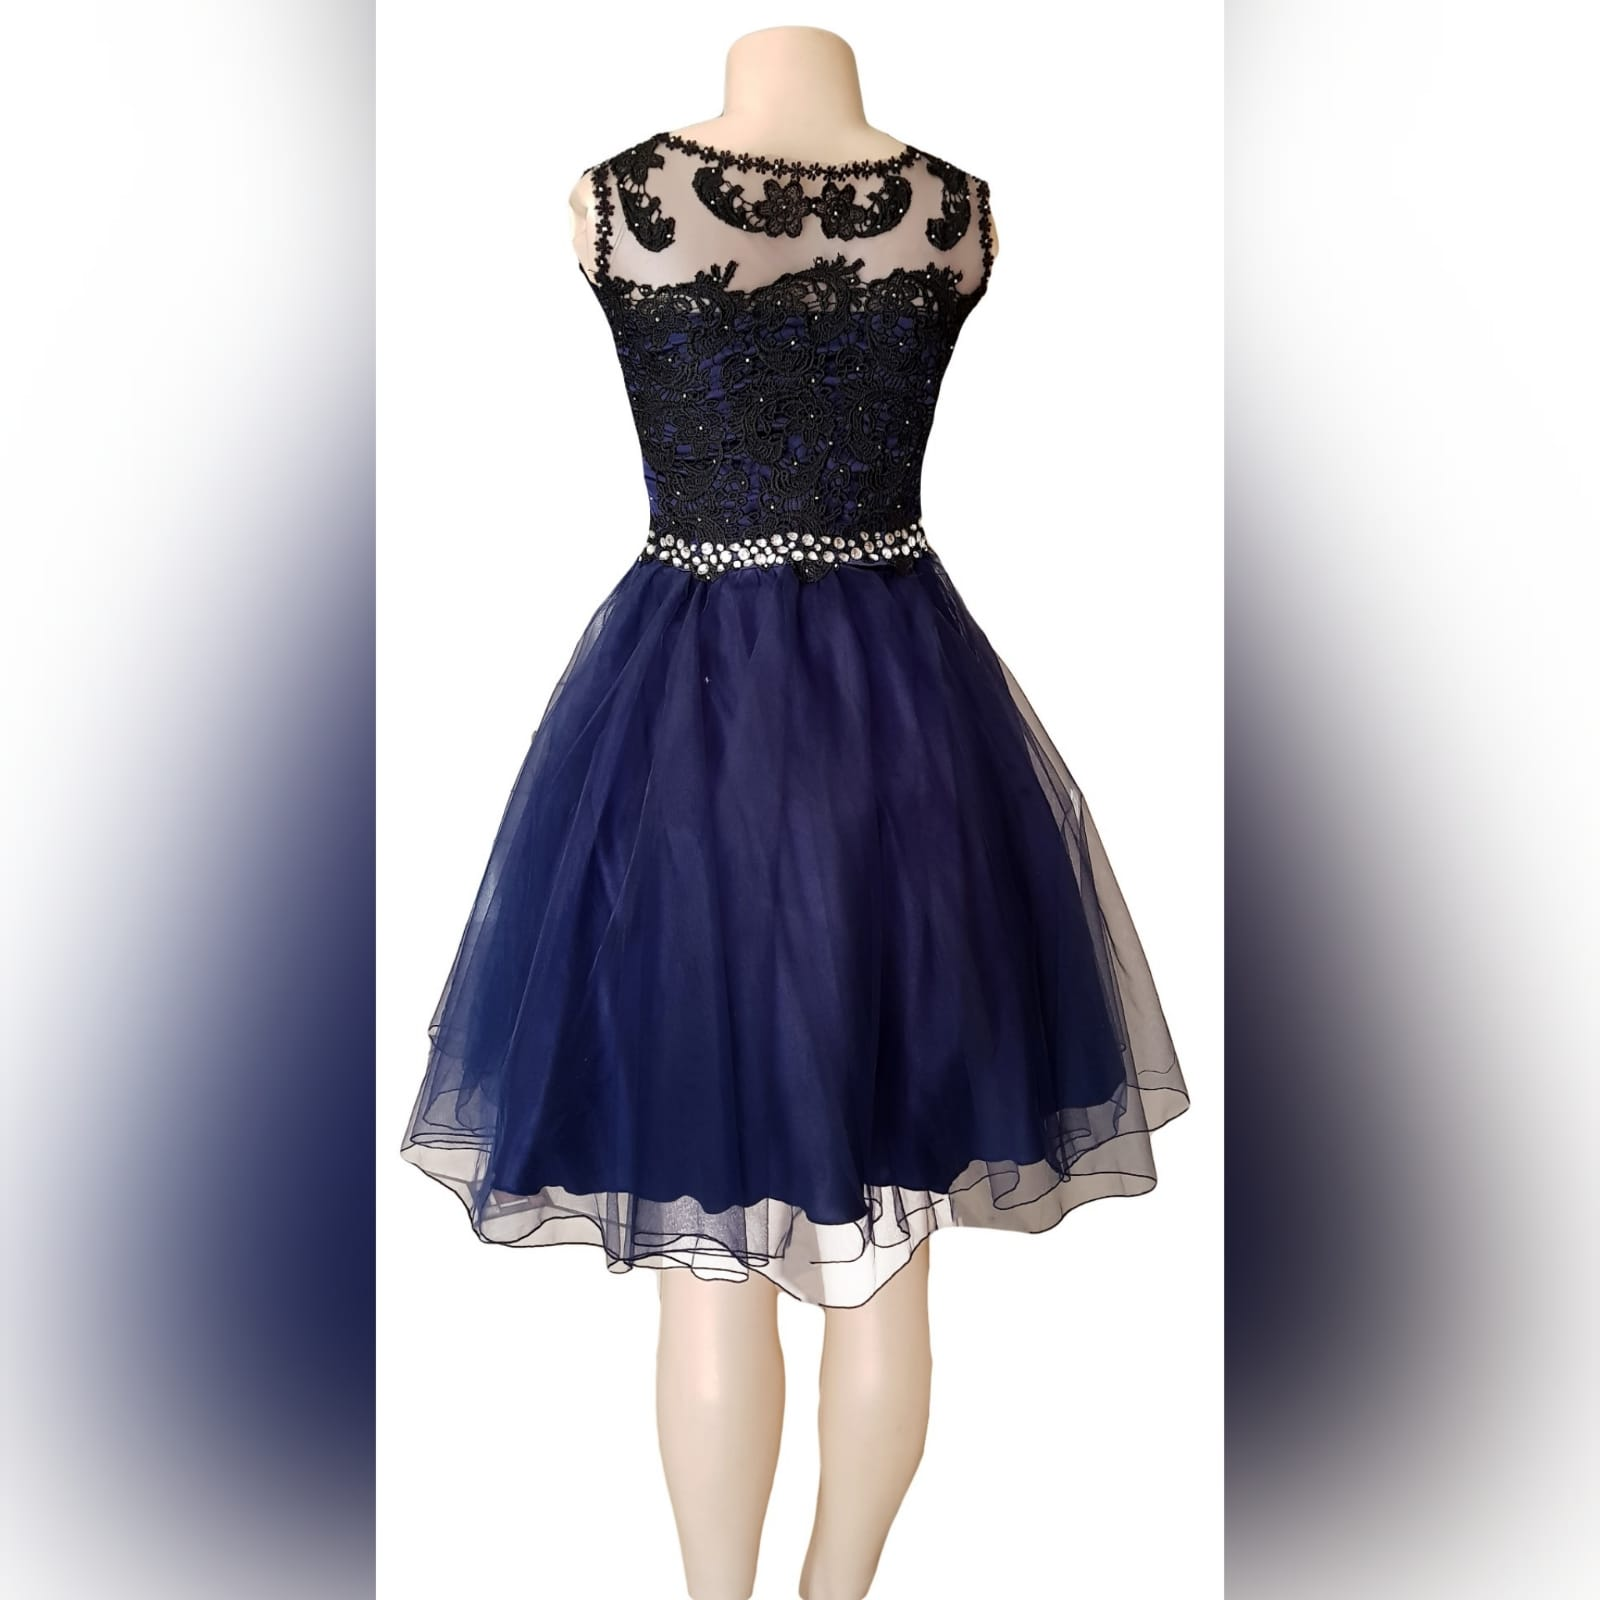 Navy blue short evening dress 4 this adorable navy blue short evening dress was created for a debutante's ball. With an illusion neckline detailed with lace to add sophistication to the design, scattered silver beads on the lace. A silver beaded belt effect to enhance the waistline, with a cute knee-length tulle skirt